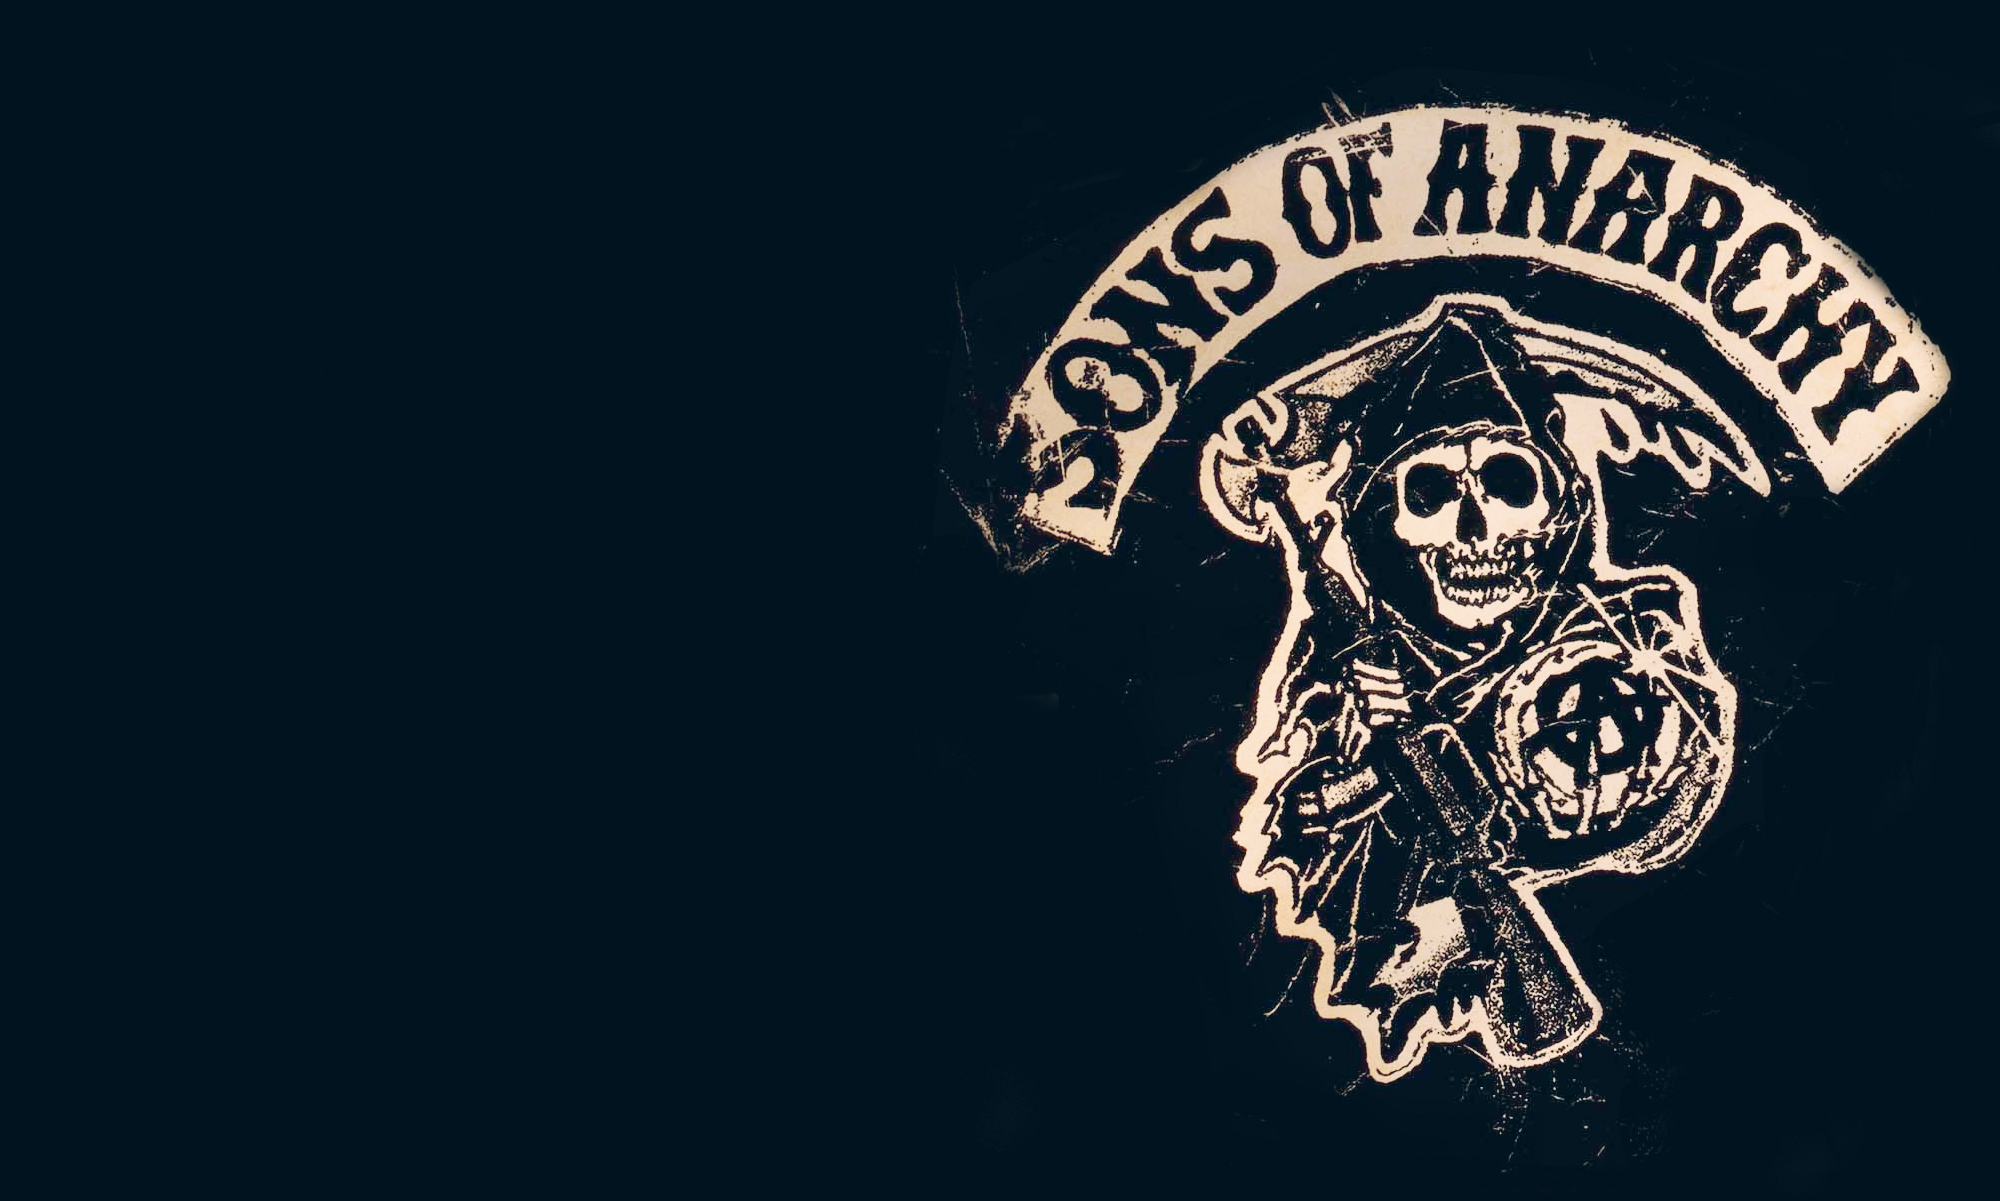 Sons of anarchy wallpapers pictures images sons of anarchy wallpaper voltagebd Gallery